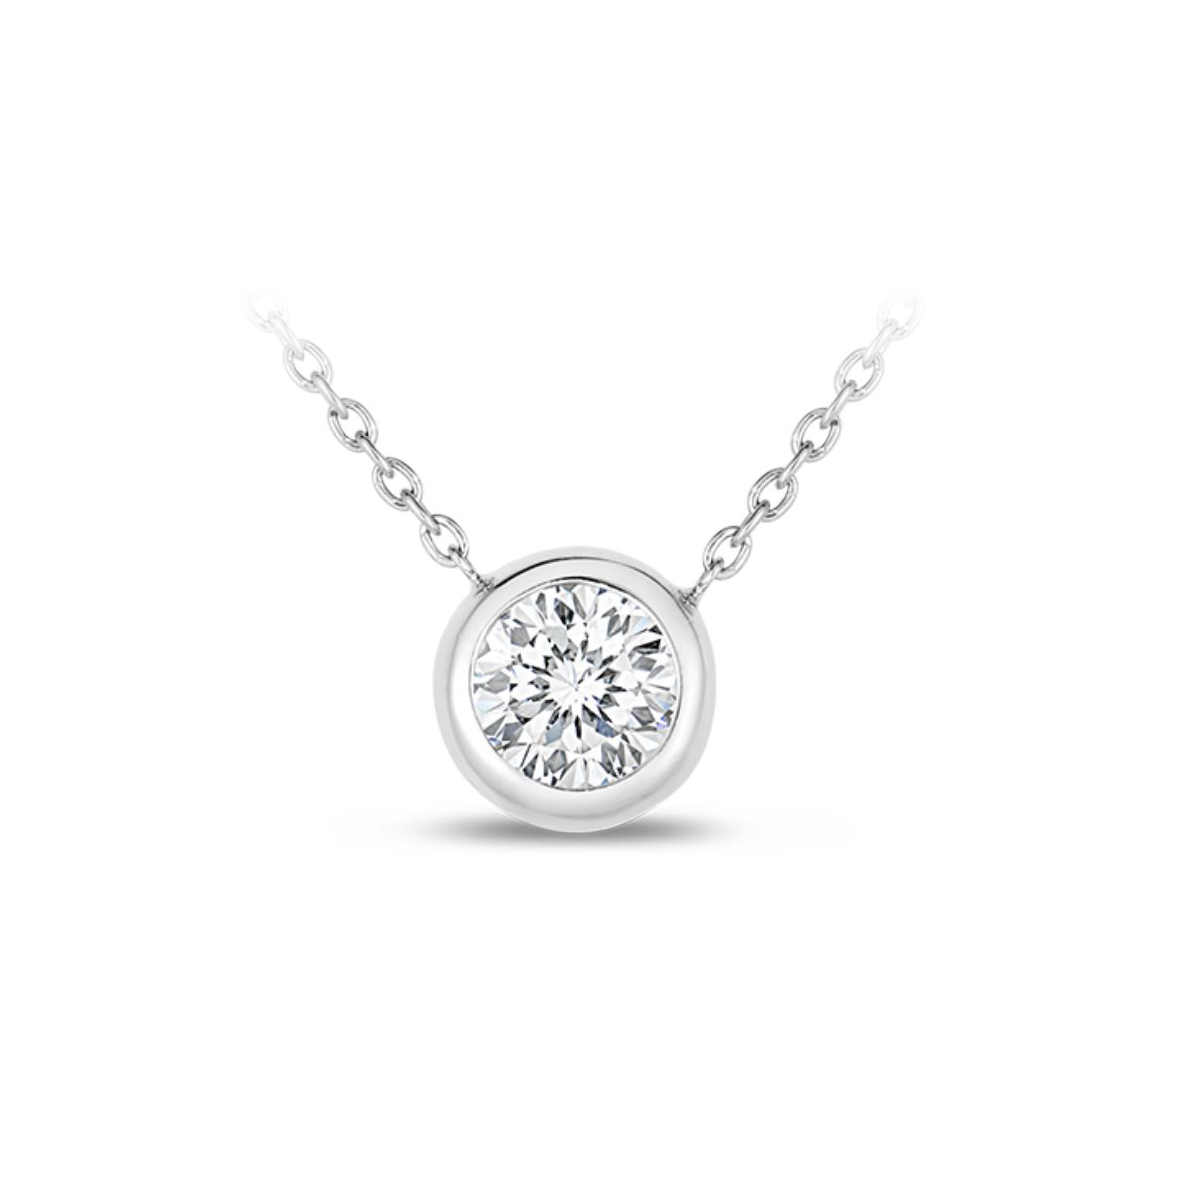 Roberto Coin 18 Karat White Gold Bezel Set Diamond Solitaire Necklace